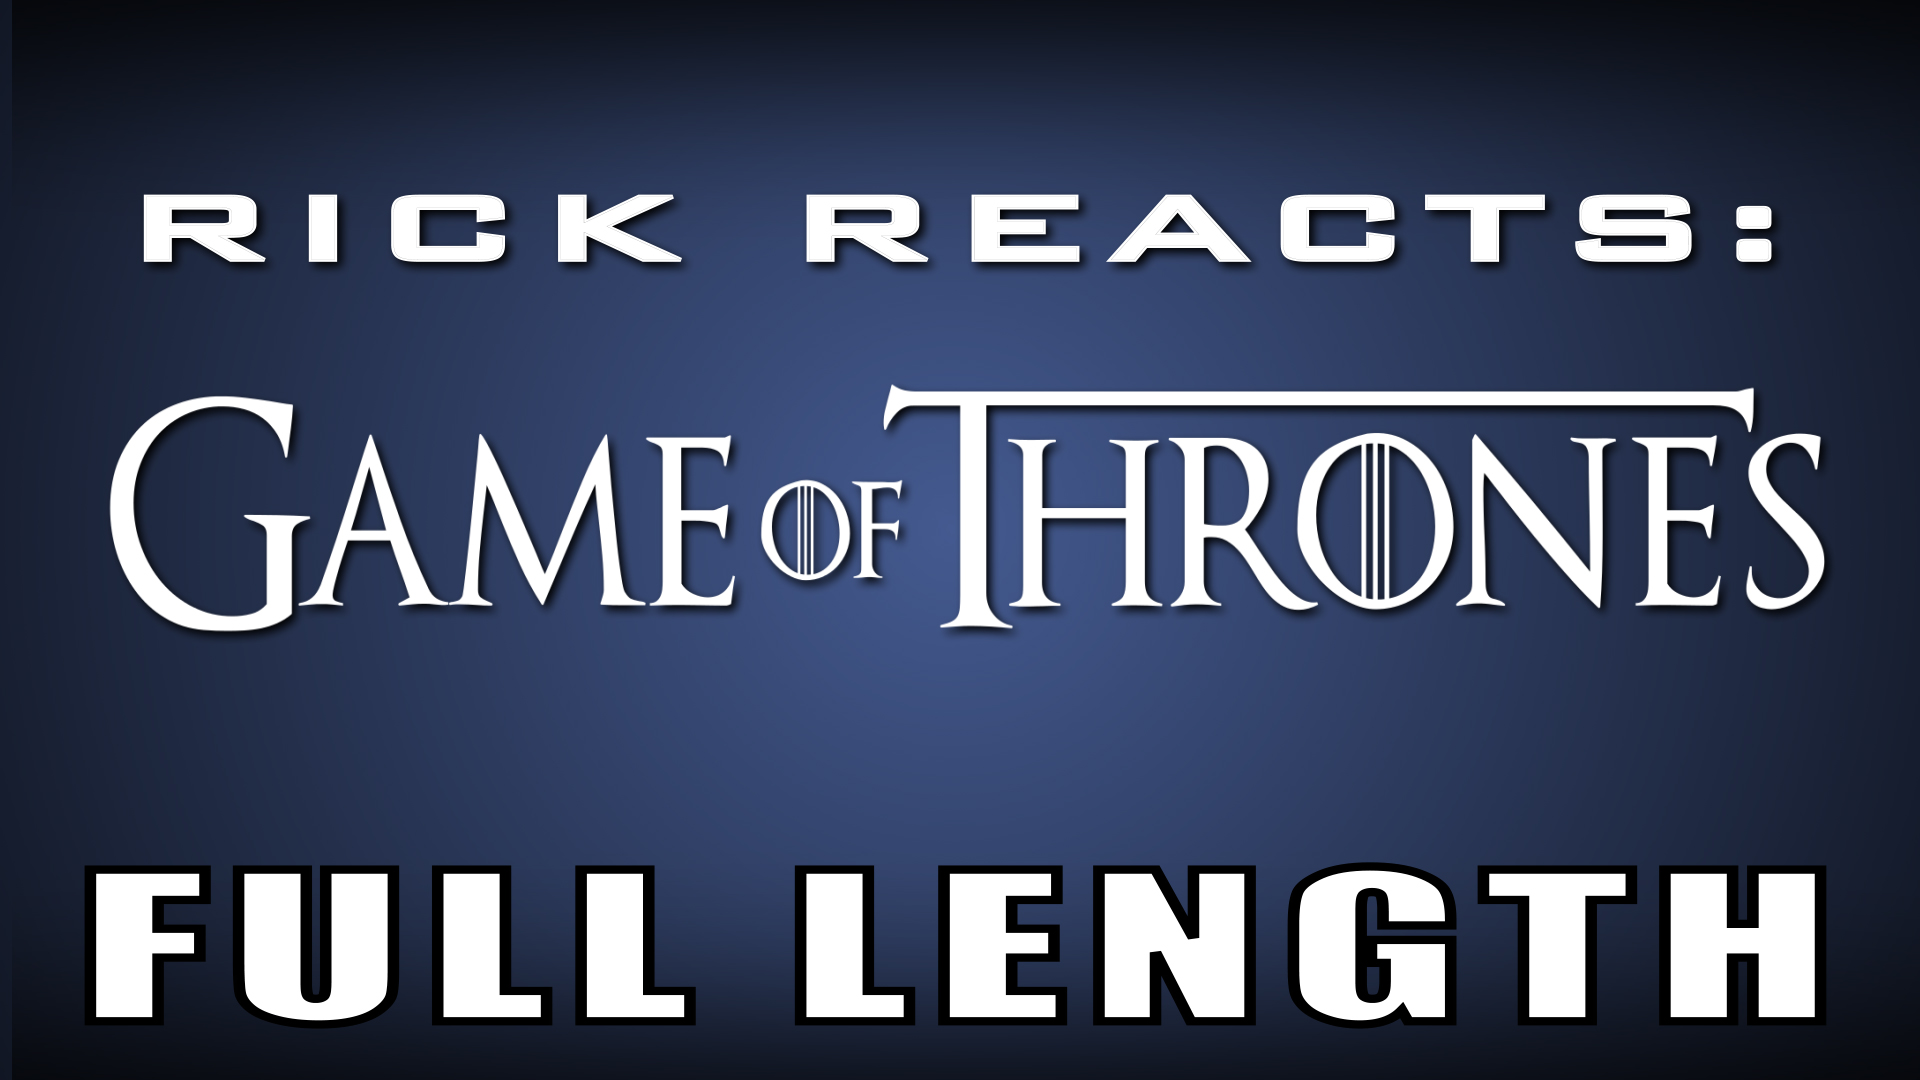 Rick Reacts Game of Thrones Full Length Icon_00000